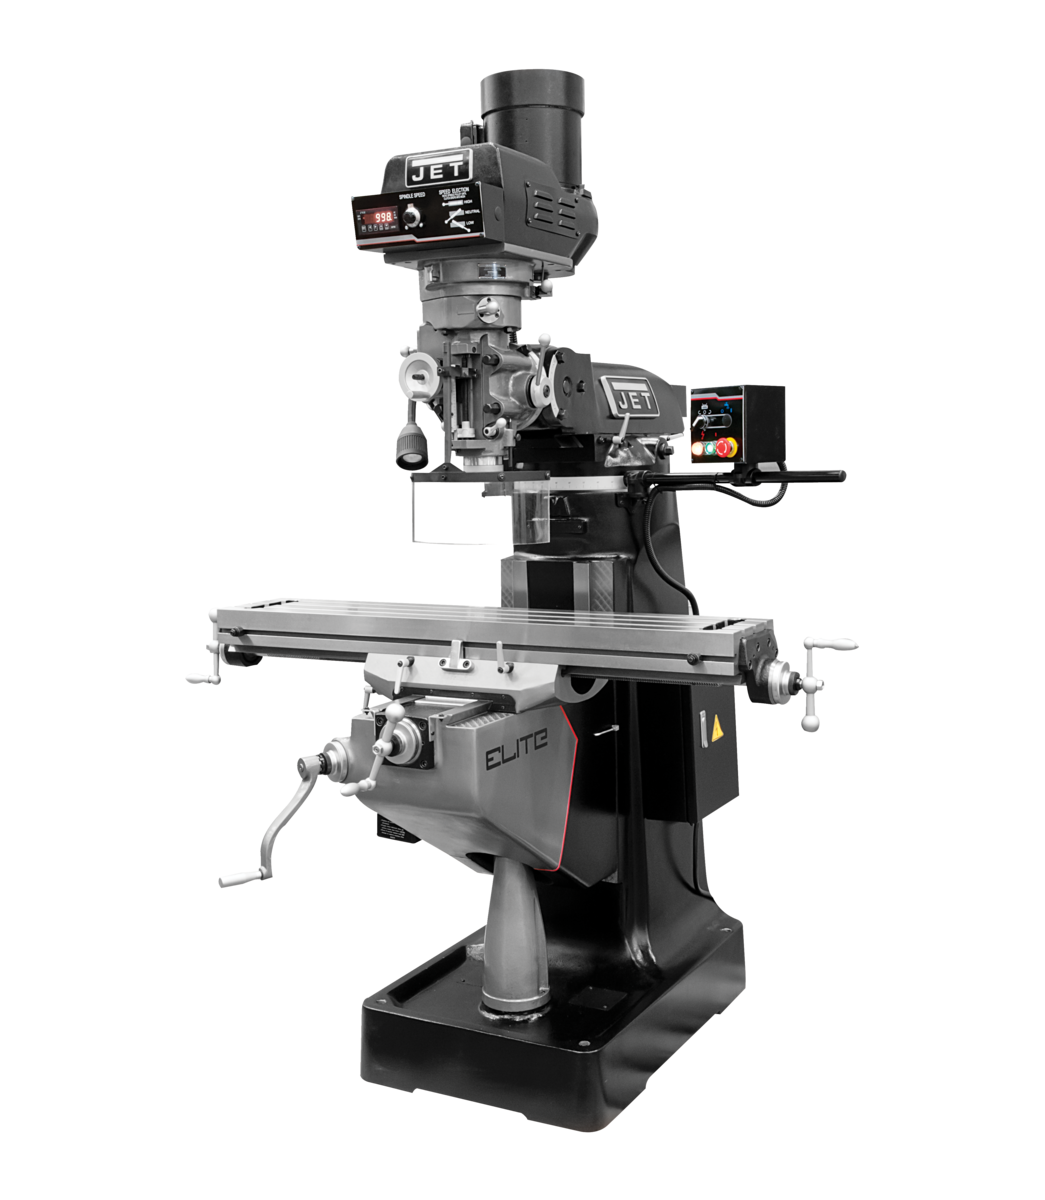 EVS-949 Mill with 2-Axis ACU-RITE 303 DRO and Servo X-Axis Powerfeed and USA Air Powered Draw Bar